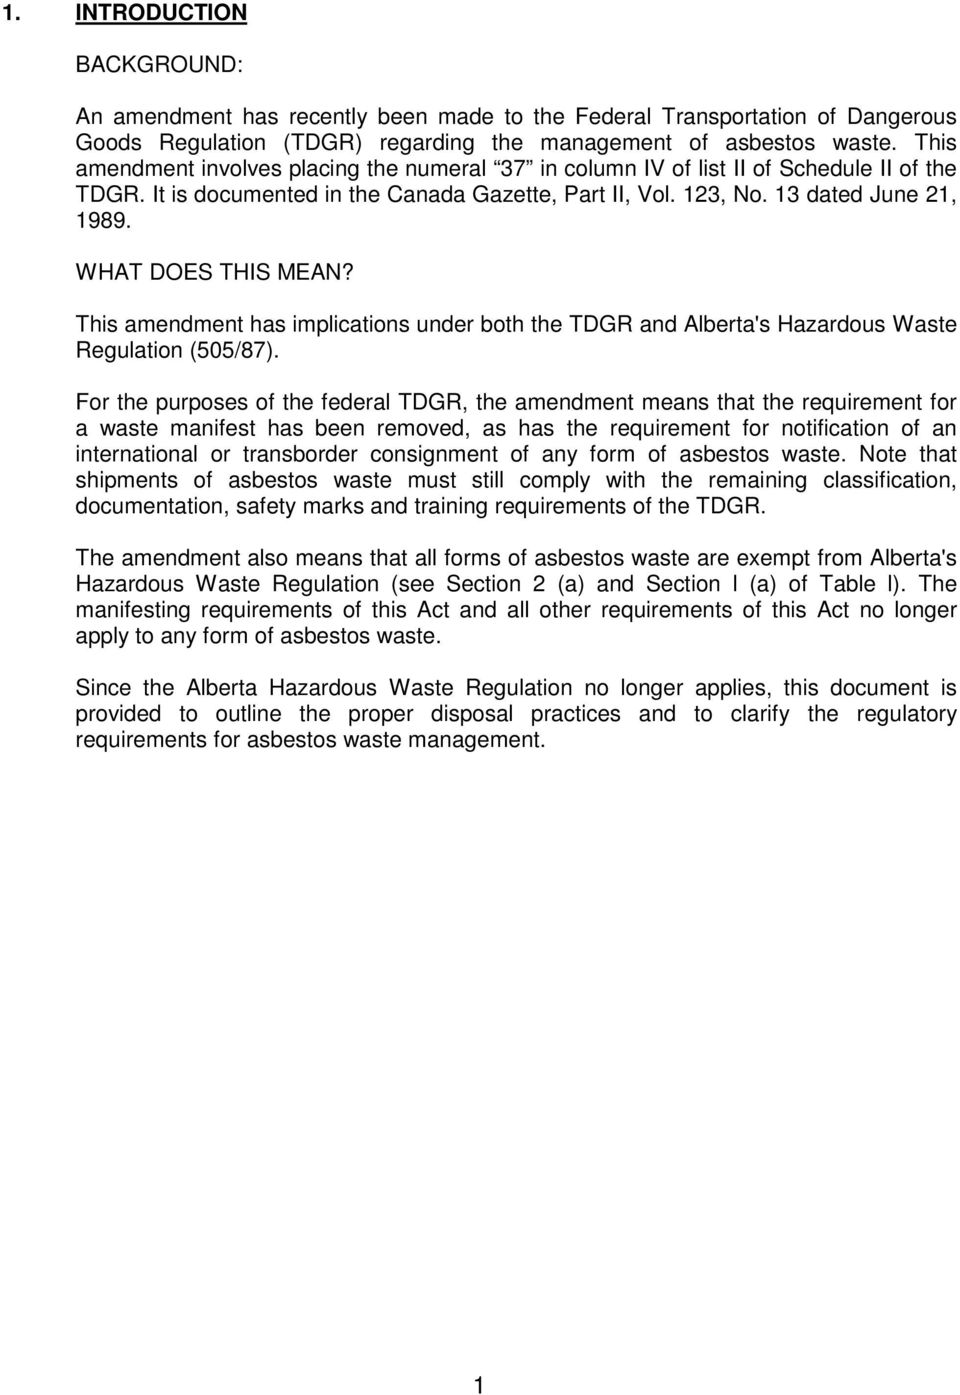 WHAT DOES THIS MEAN? This amendment has implications under both the TDGR and Alberta's Hazardous Waste Regulation (505/87).